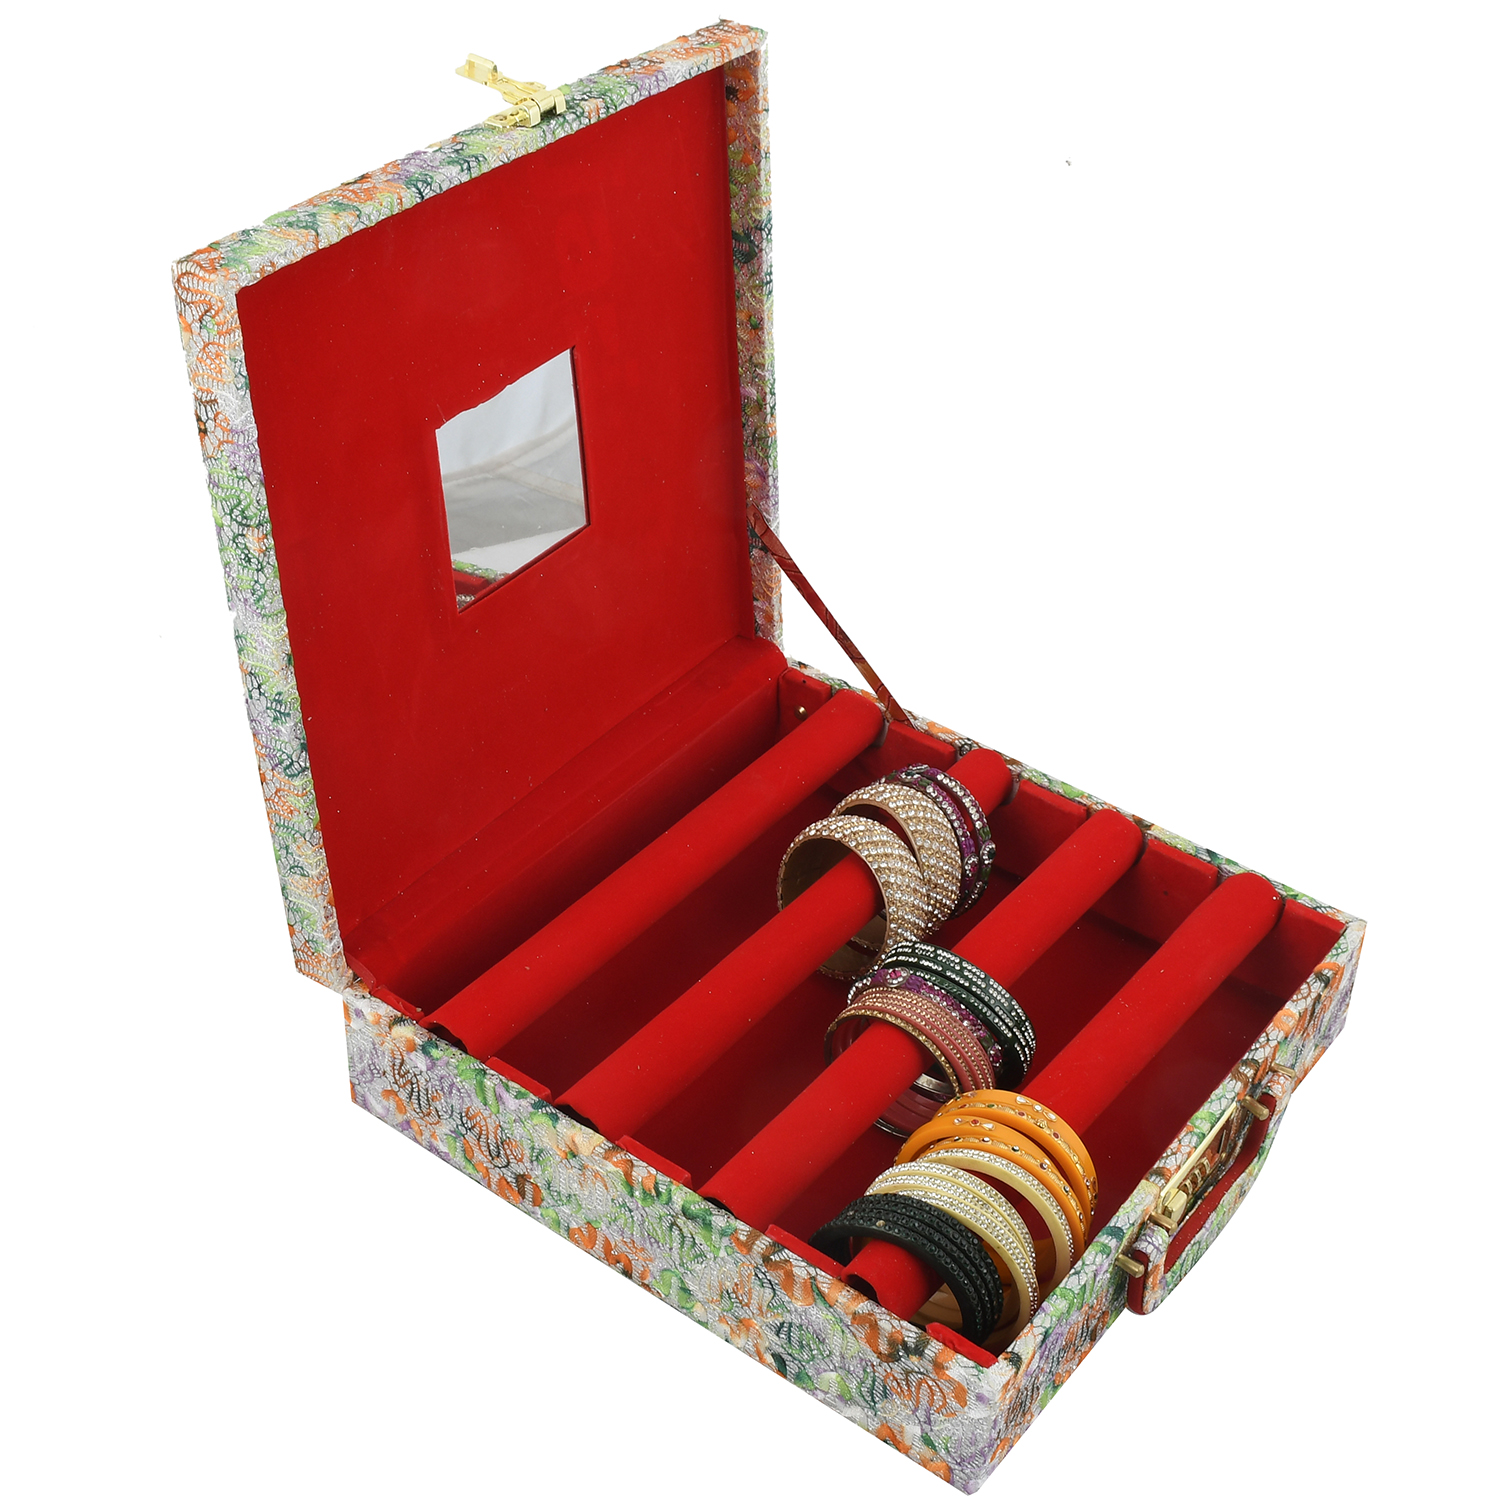 Kuber Industries Wooden 1 Piece Four Rod Shining Bangle Storage Box with Lock System (Orange & Green) -CTKTC39386